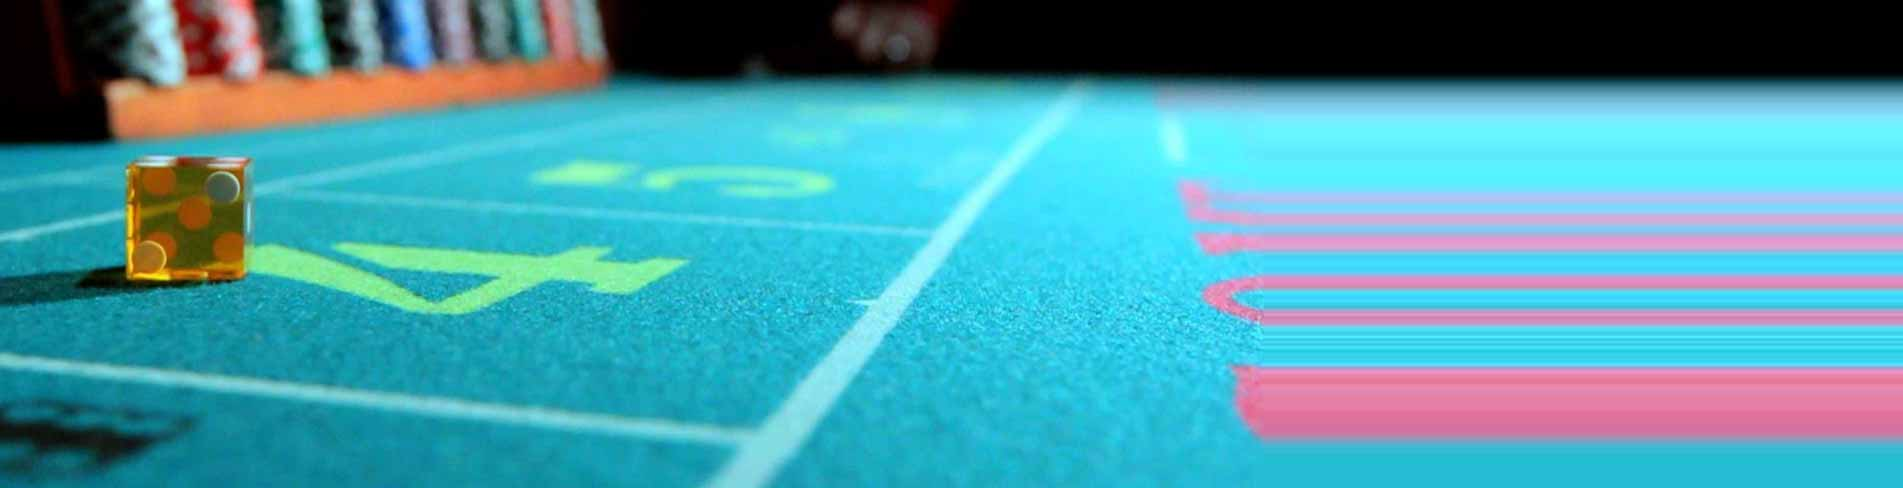 Craps Table with Die